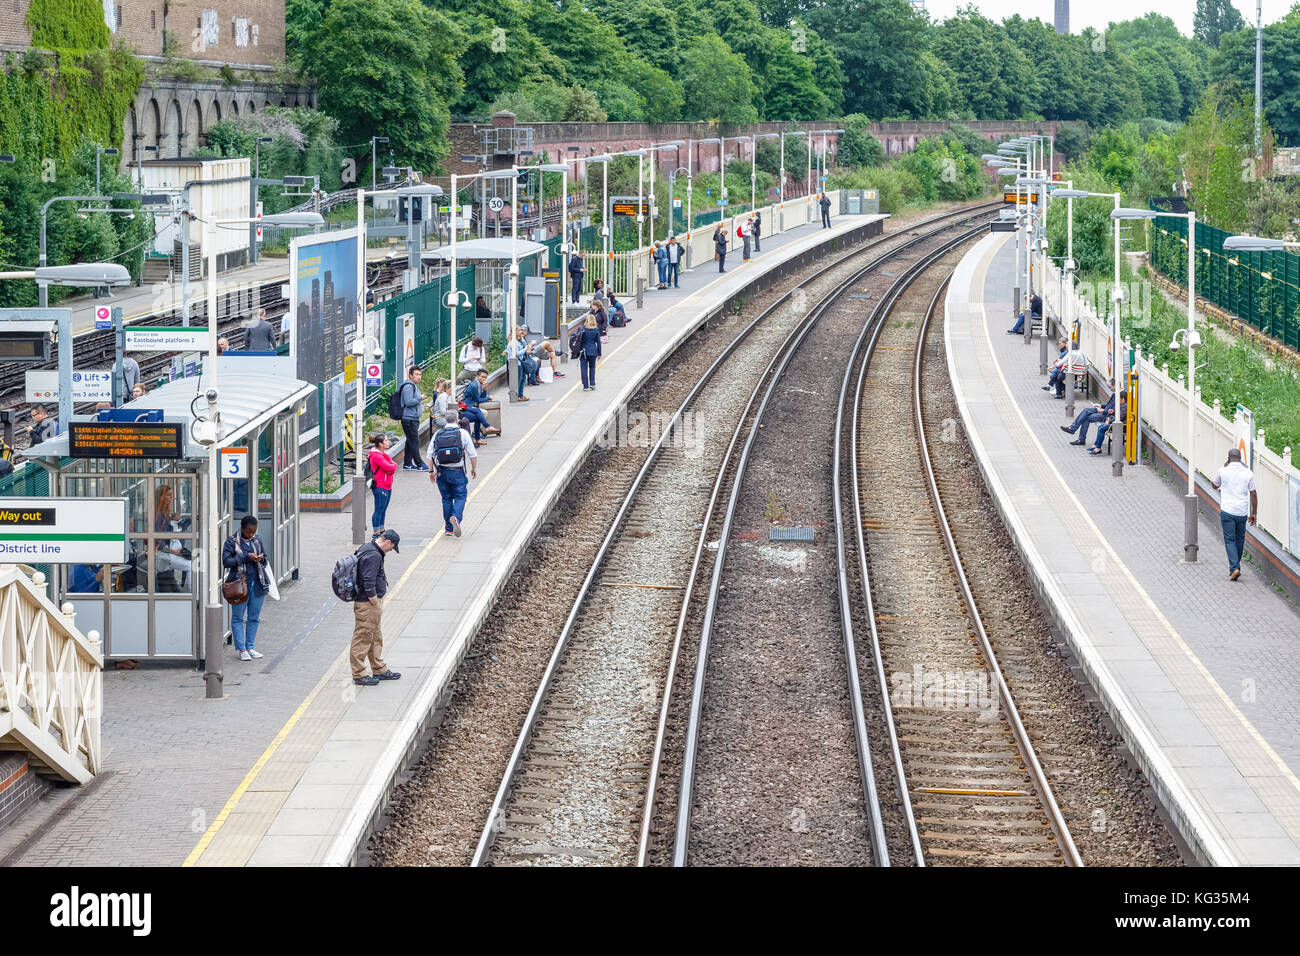 London, UK - October 23, 2017 - West Brompton overground station platforms, with commuters waiting on platforms - Stock Image